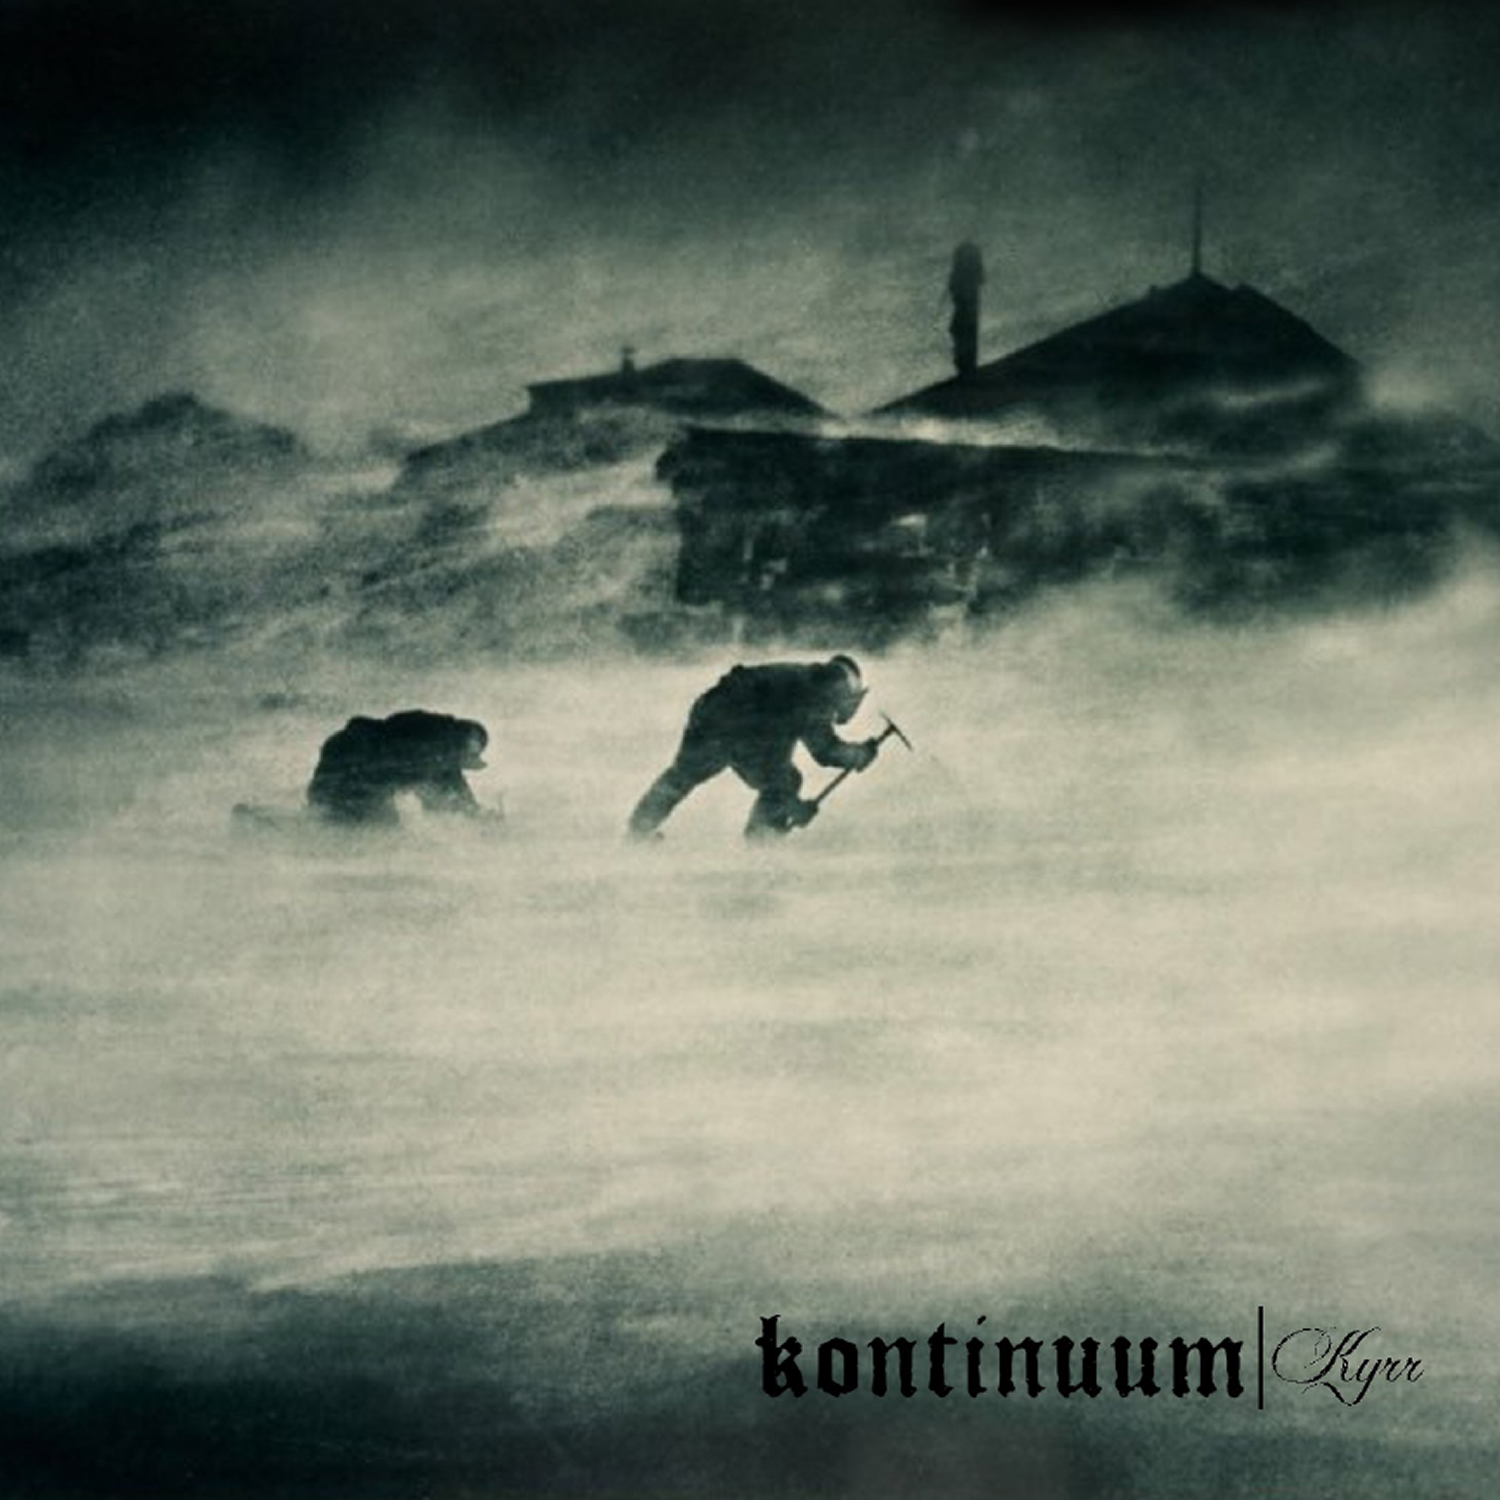 Kontinuum – Kyrr Review